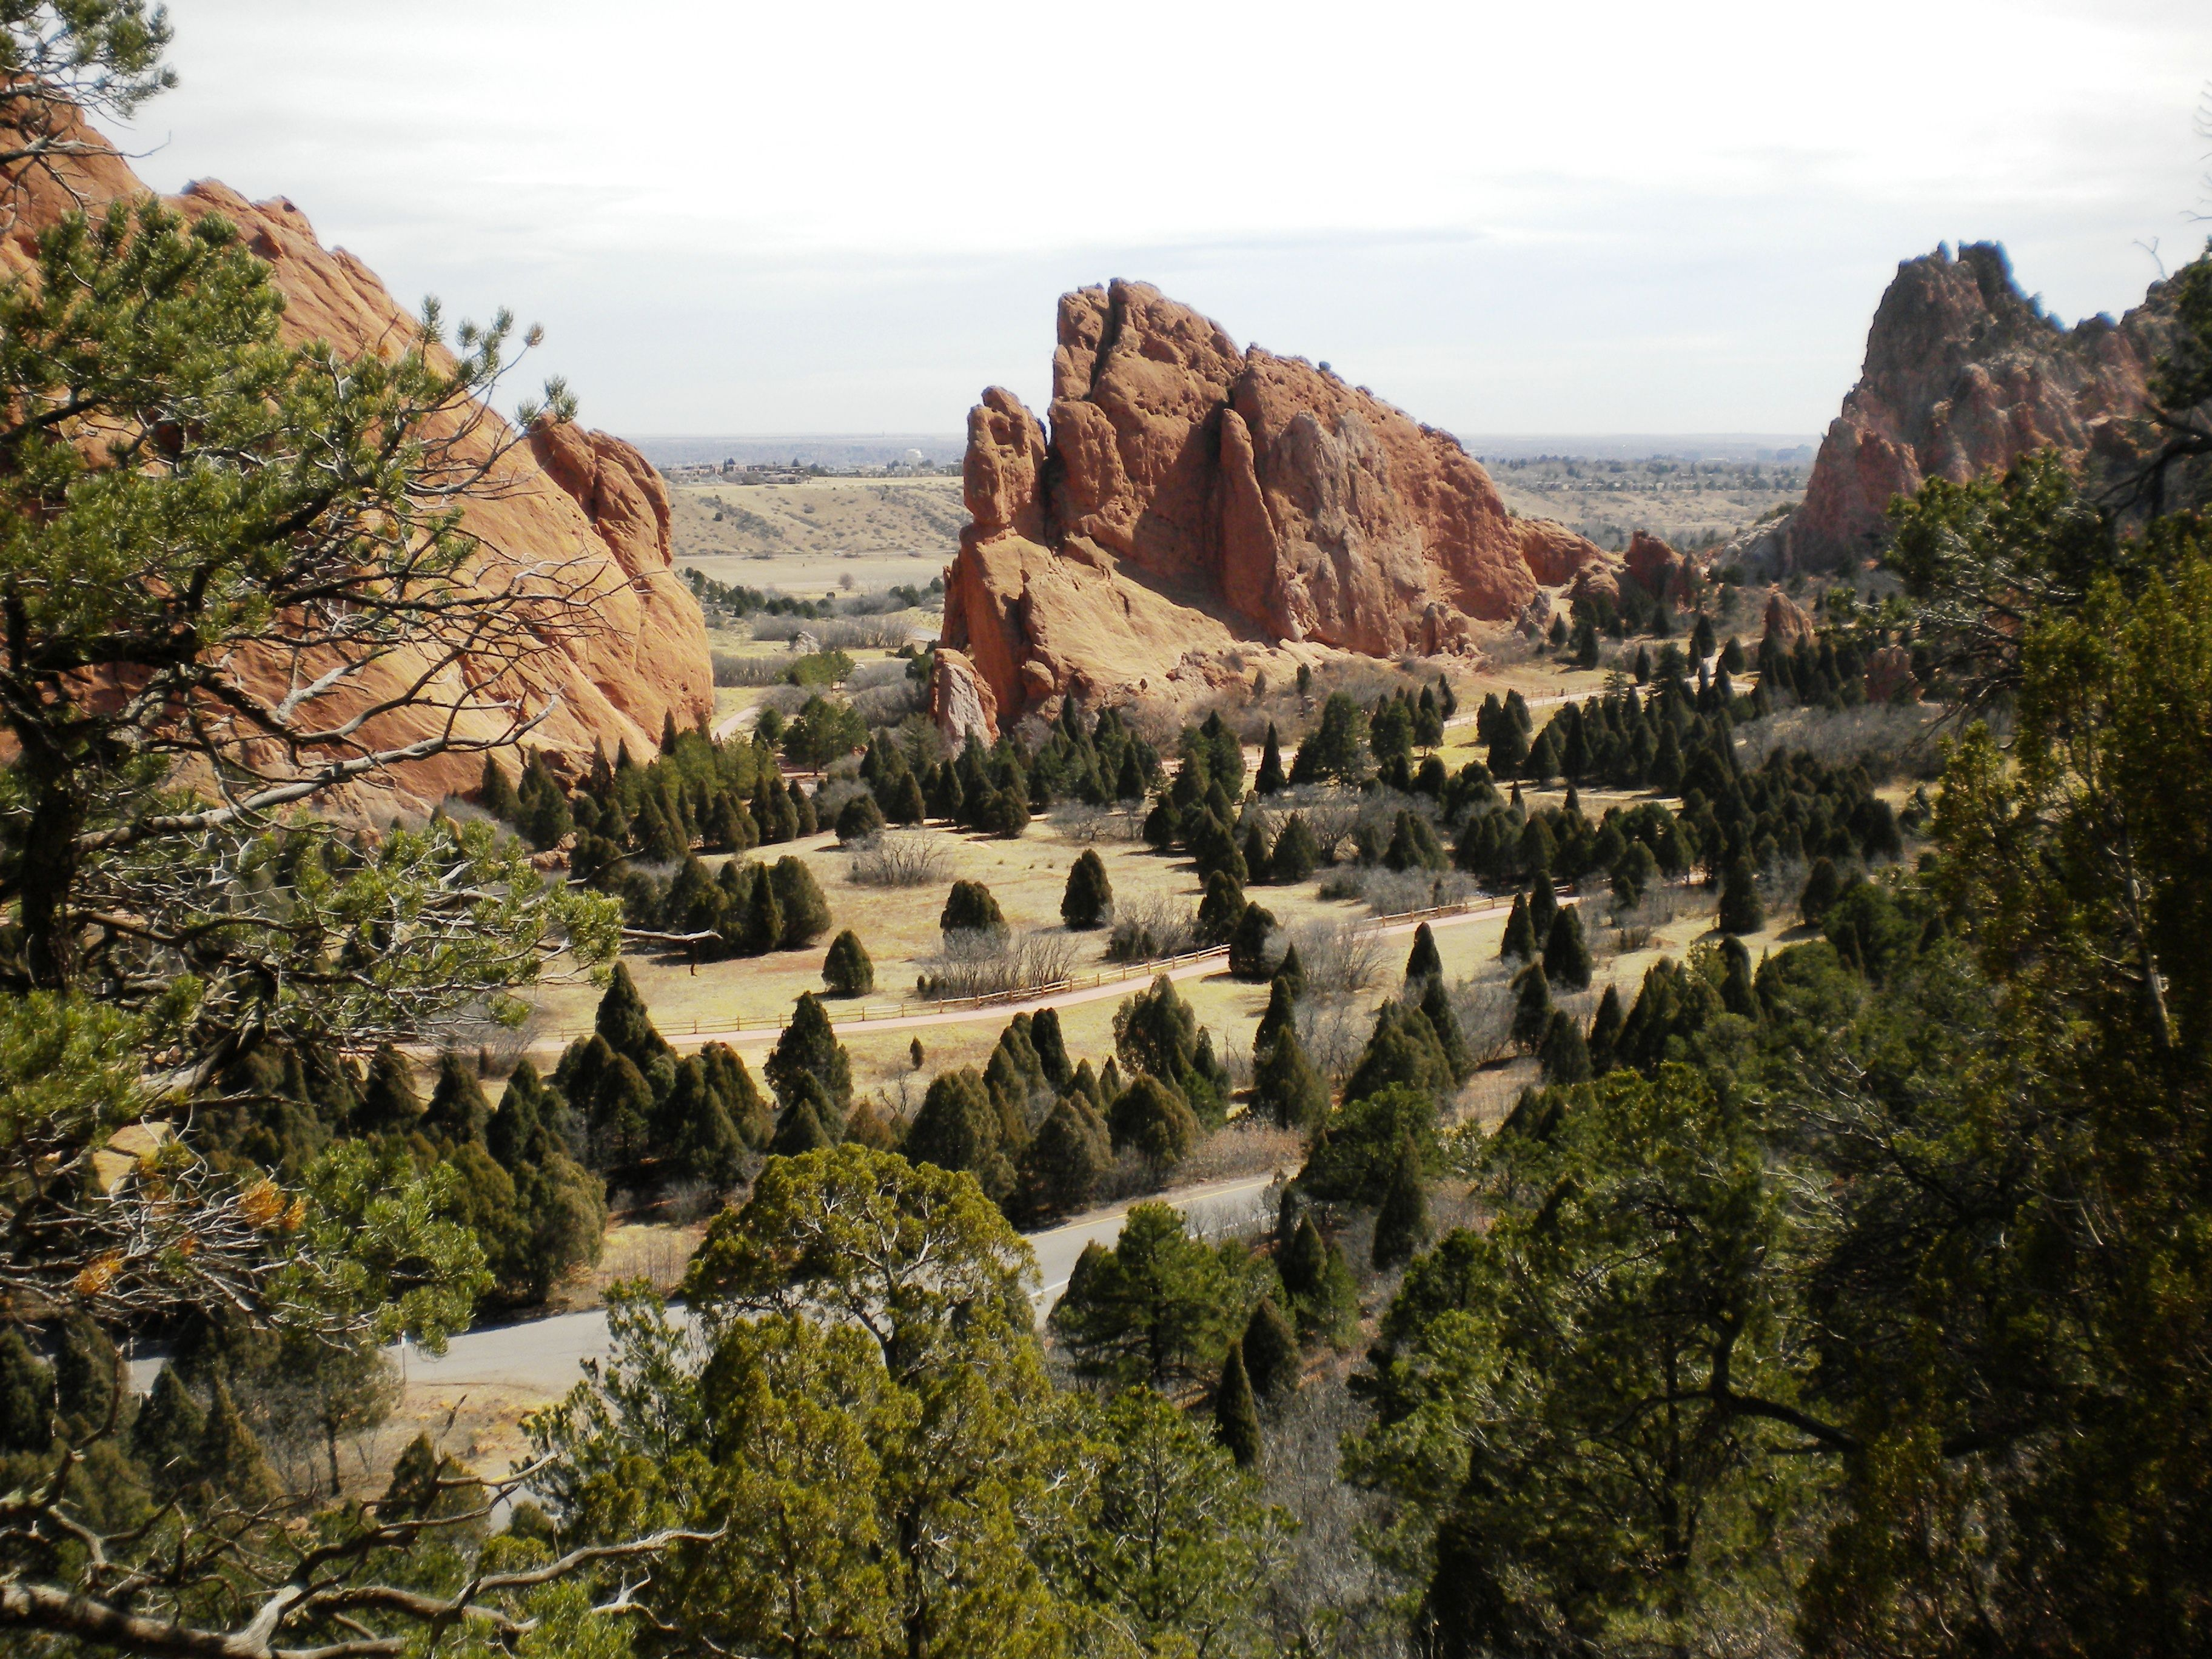 Garden of the Gods, CO lots of great hiking trails